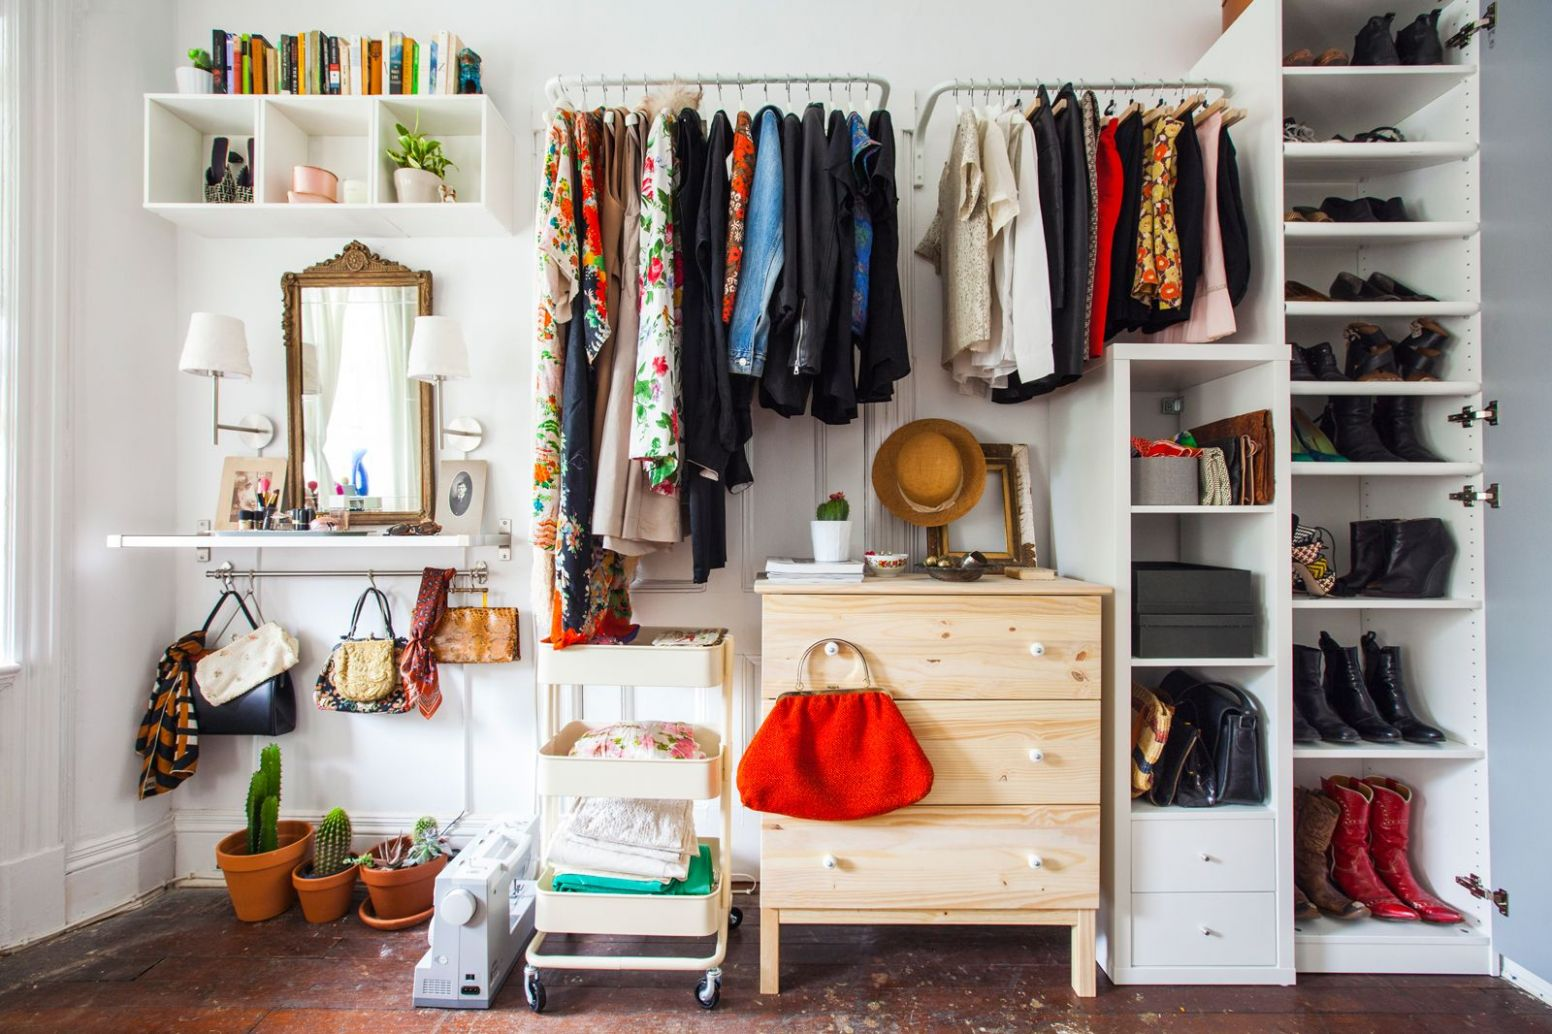 Closet Organization Ideas Clothing Storage Solutions Ikea Room ...